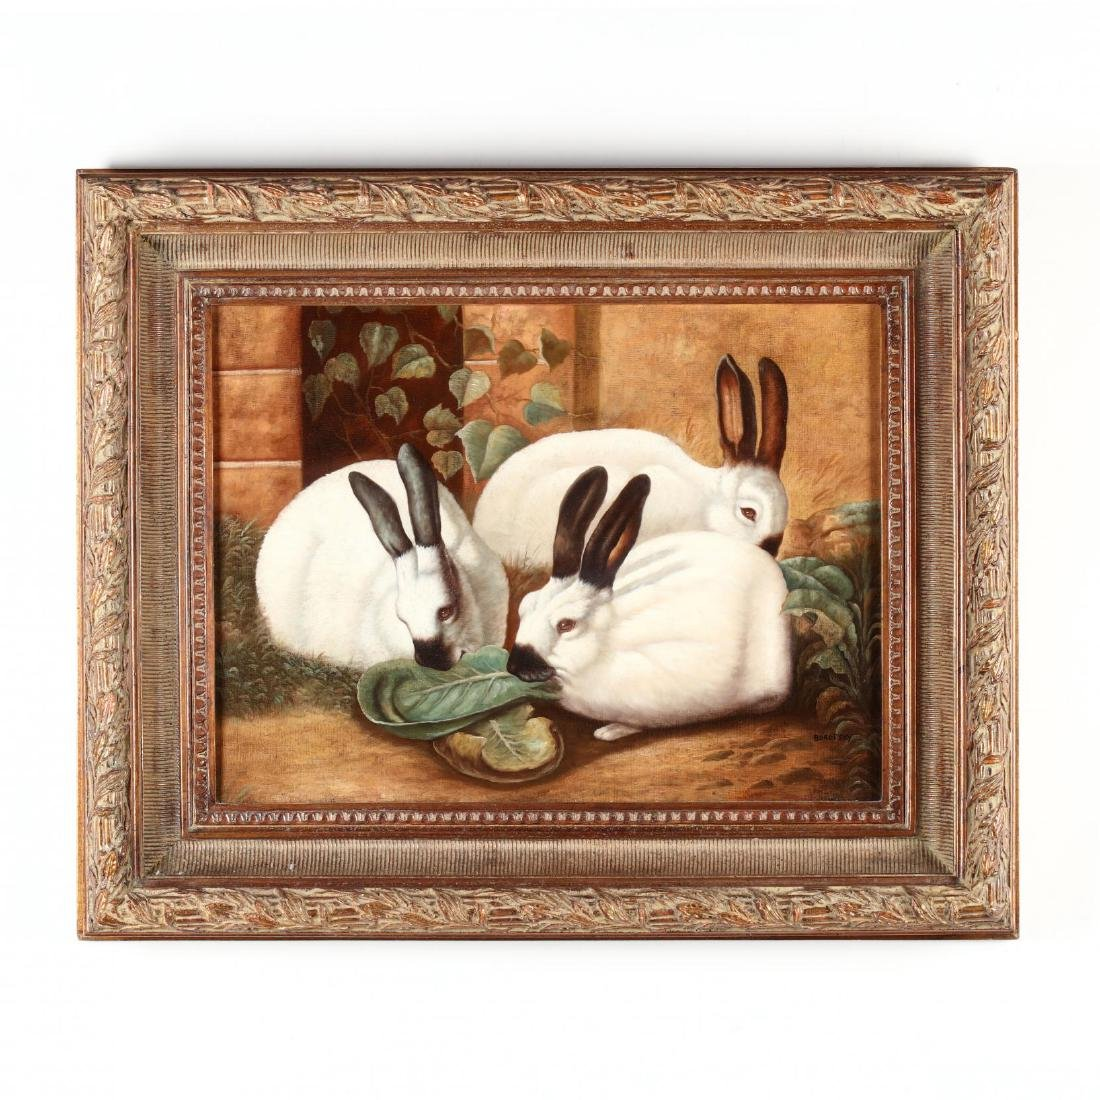 A Contemporary Decorative Painting of Rabbits